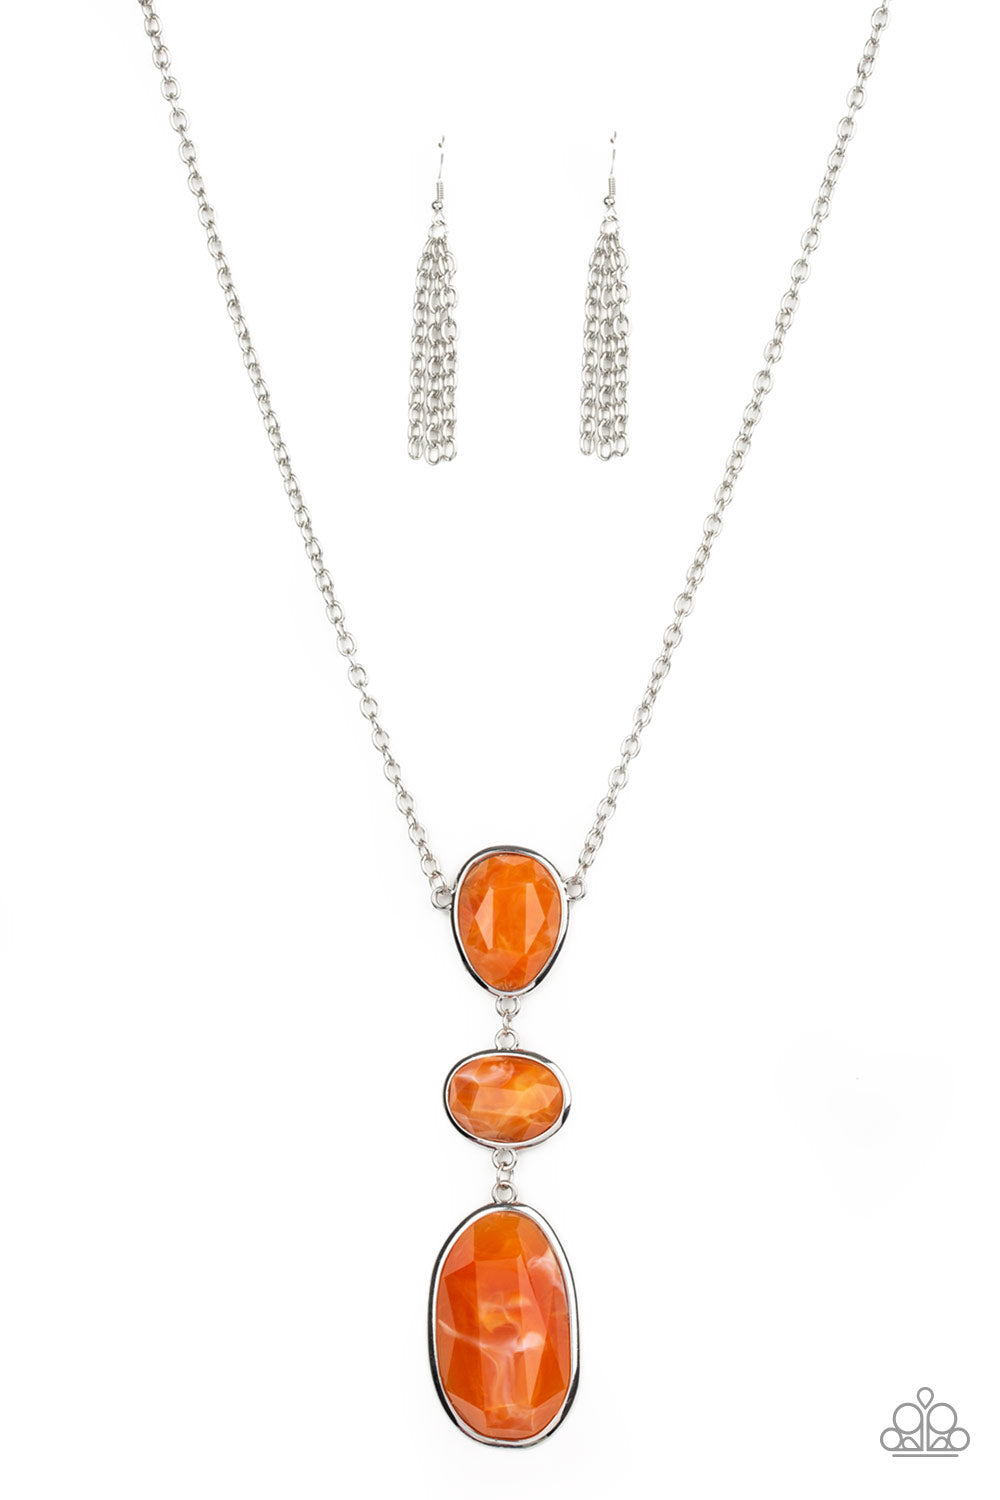 five-dollar-jewelry-making-an-impact-orange-necklace-paparazzi-accessories